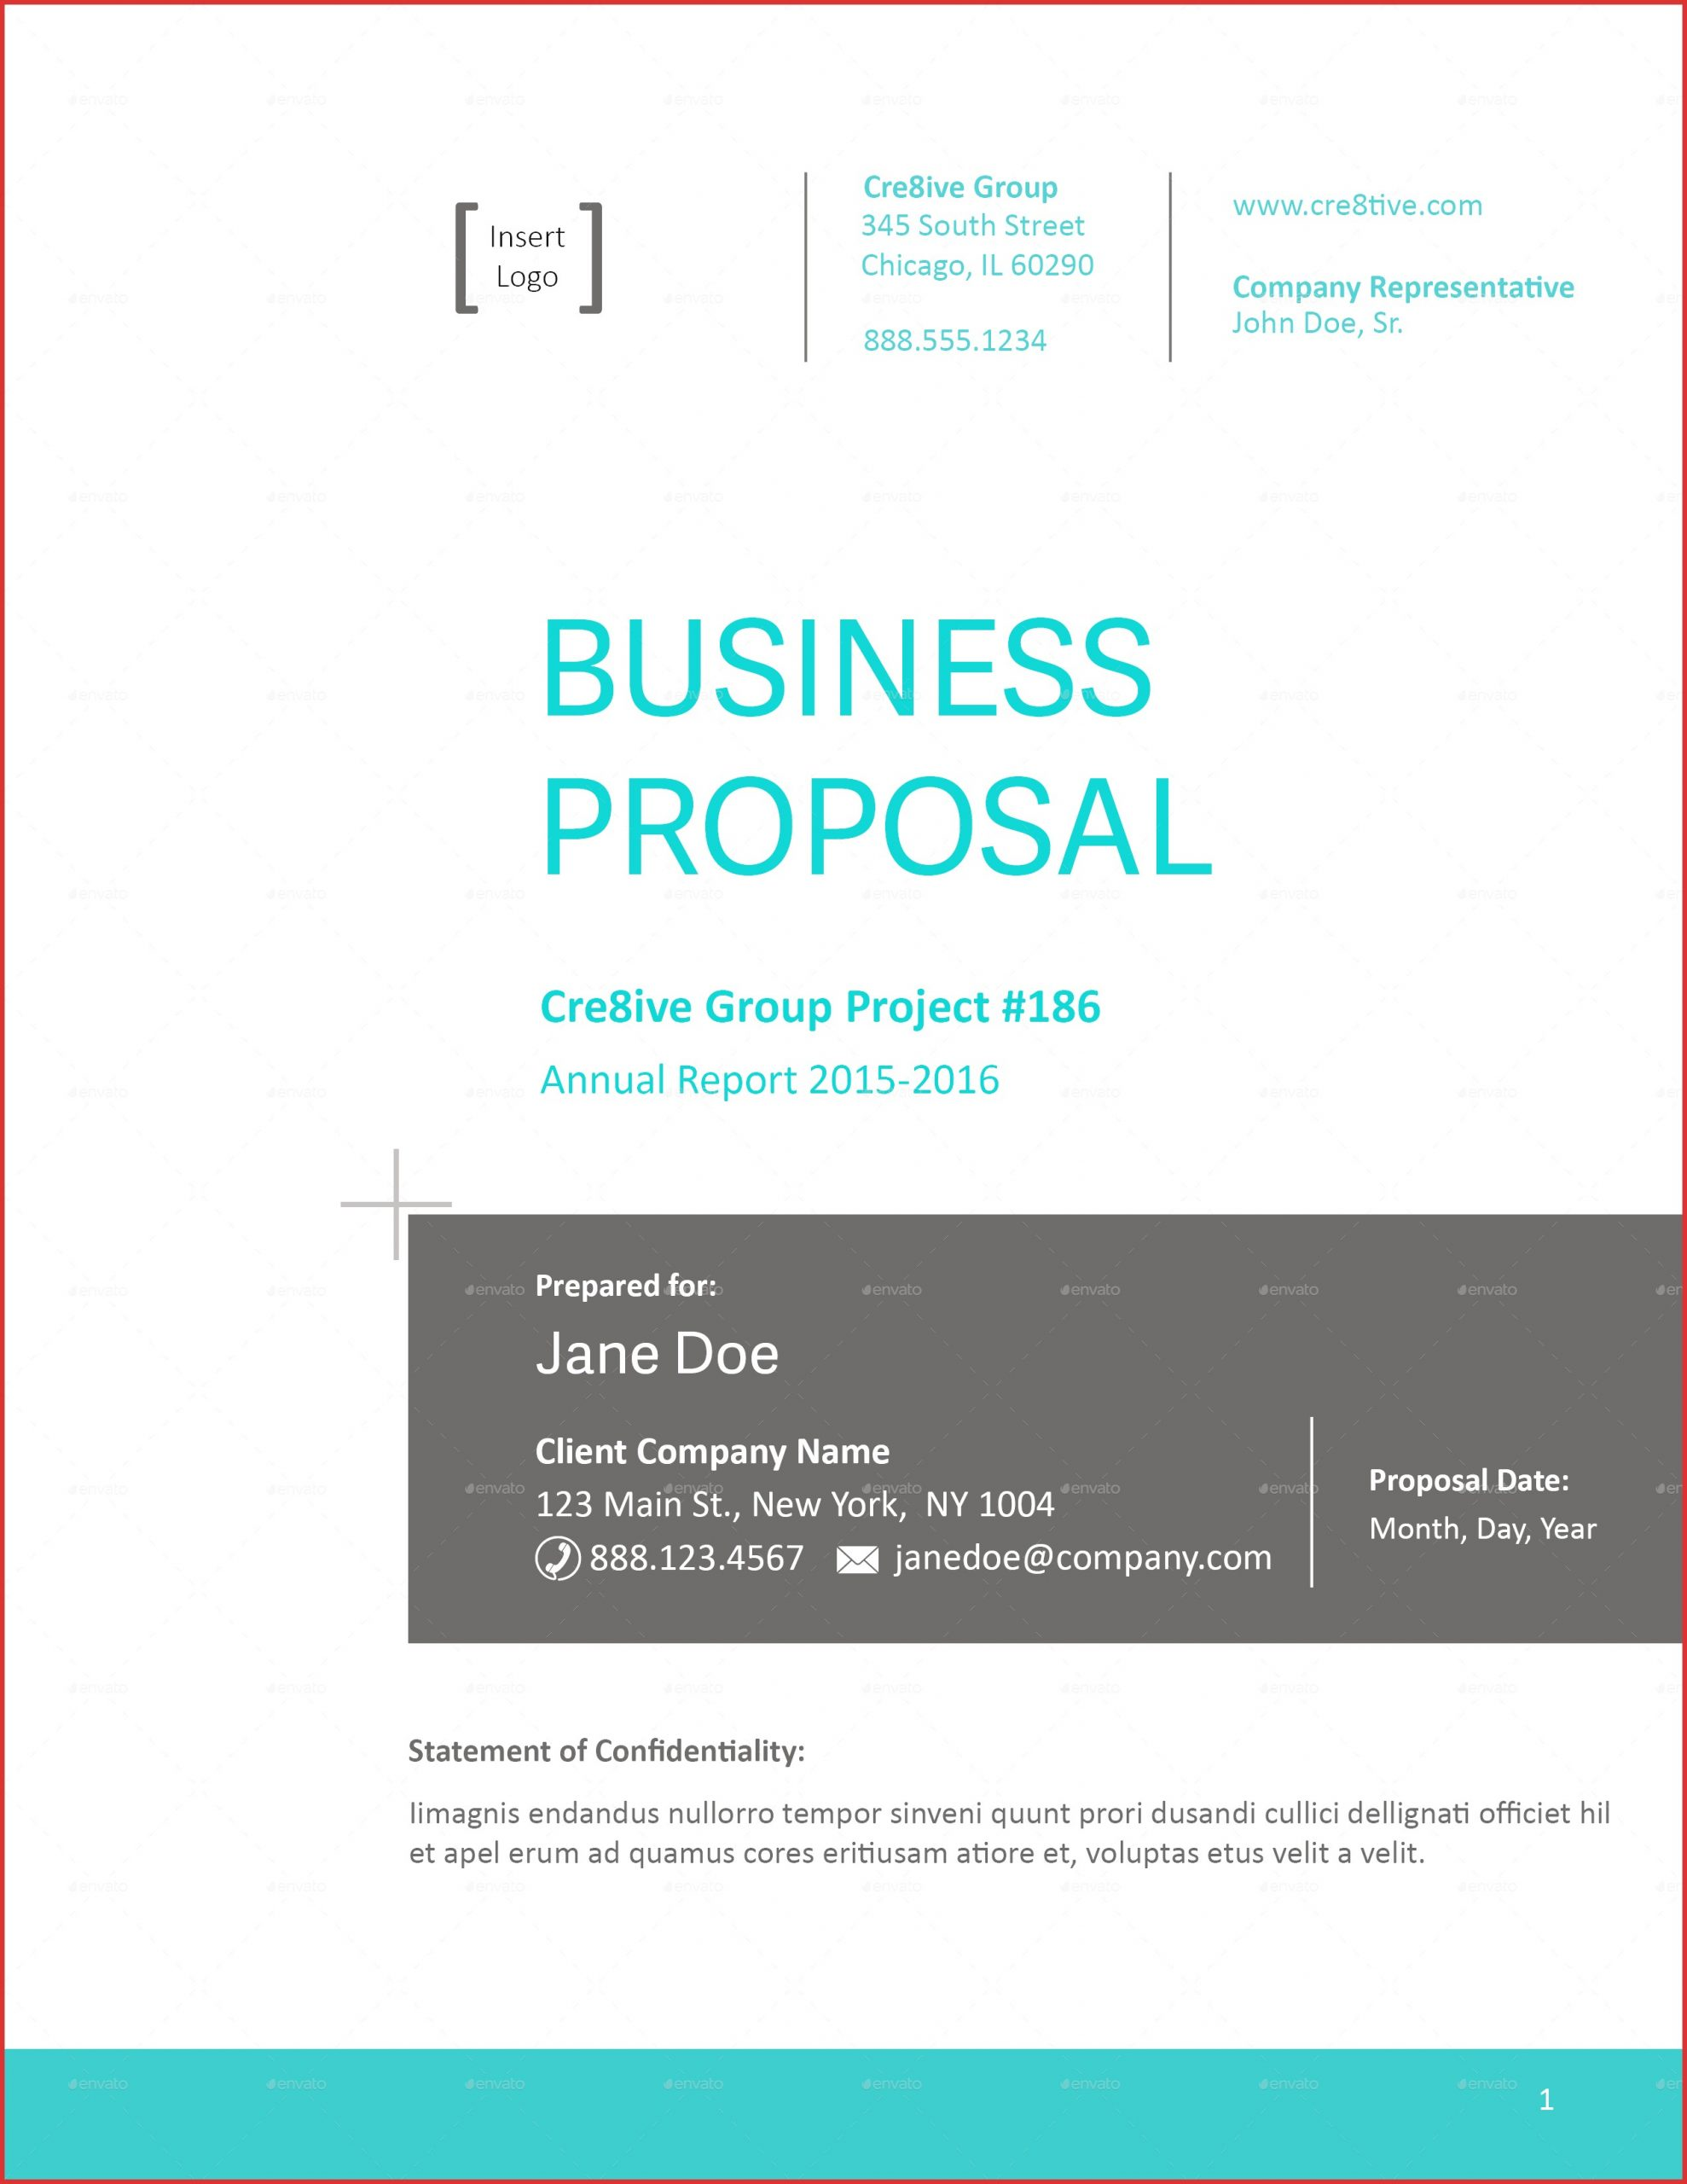 proposal template cover page  Business Proposal Cover | scrumps - proposal template cover page